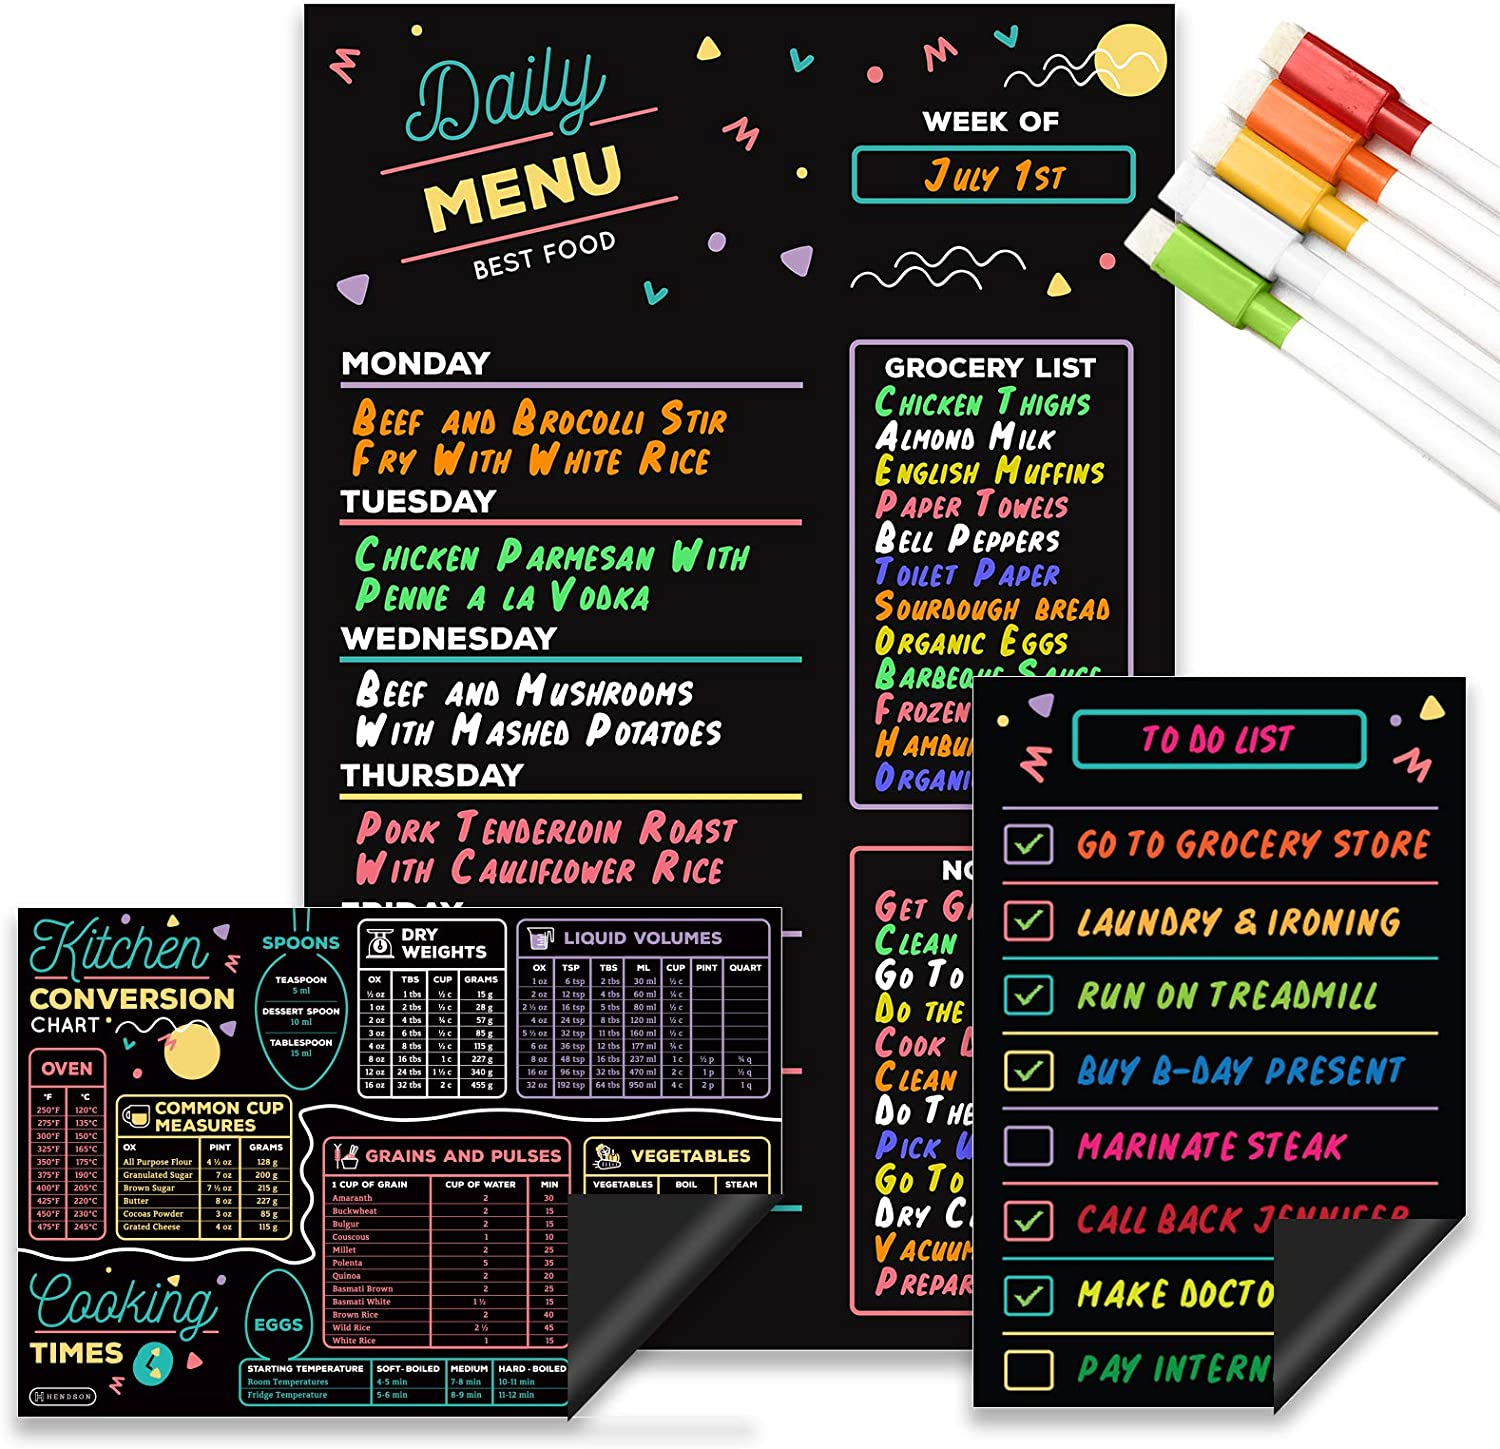 Magnetic Dry Erase Menu Board for Kitchen Refrigerator Set with Markers - Weekly Meal Planner, Cooking Conversion Chart & to-Do List - Chalkboard Style Dinner Planning Magnet Fridge Boards 3-Pack